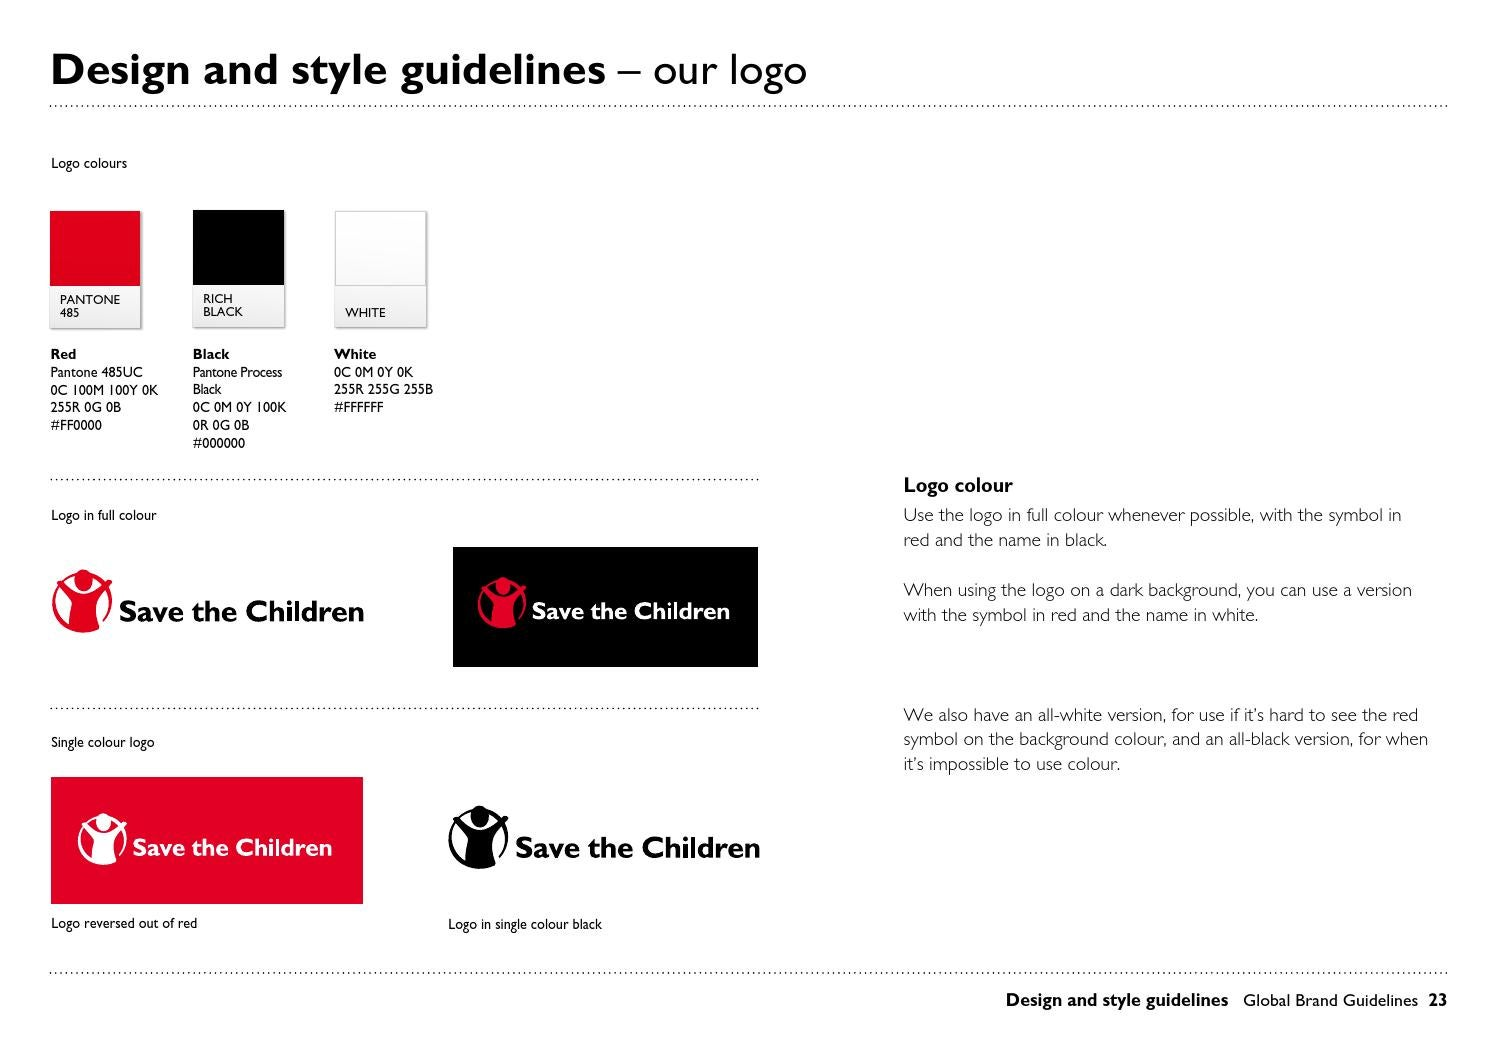 Save the Children global brand guidelines